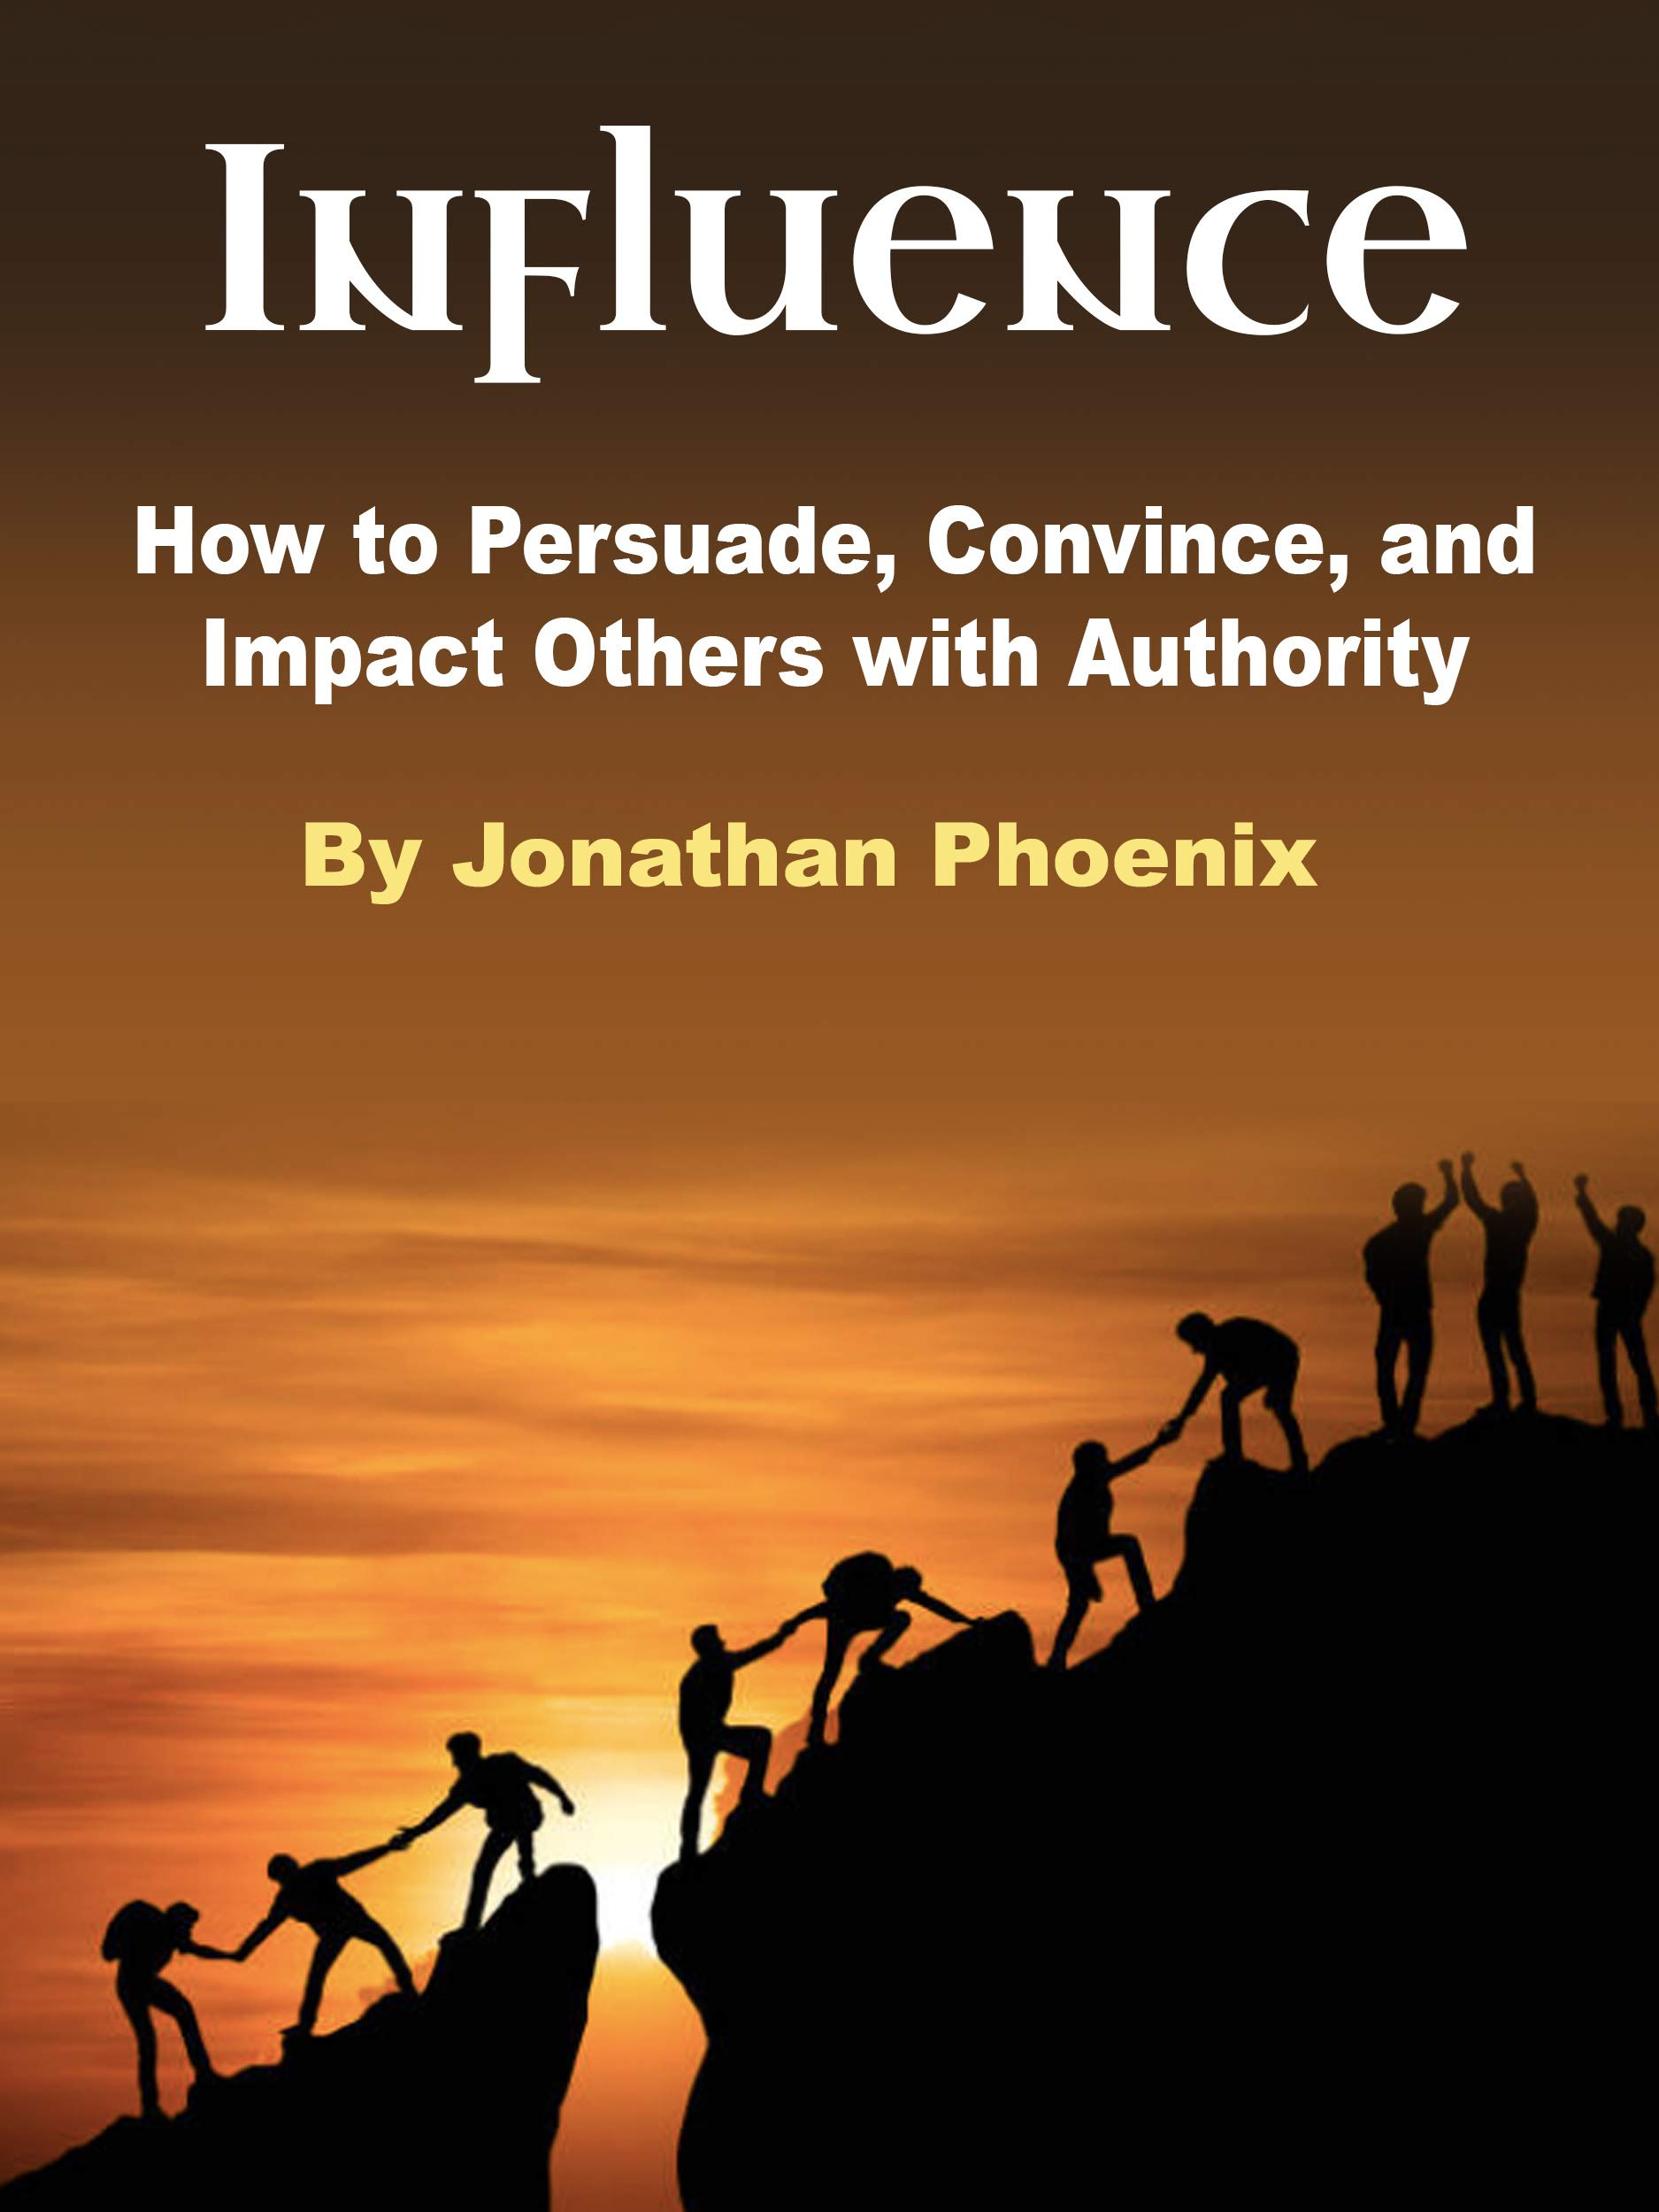 Influence: How to Persuade, Convince, and Impact Others with Authority